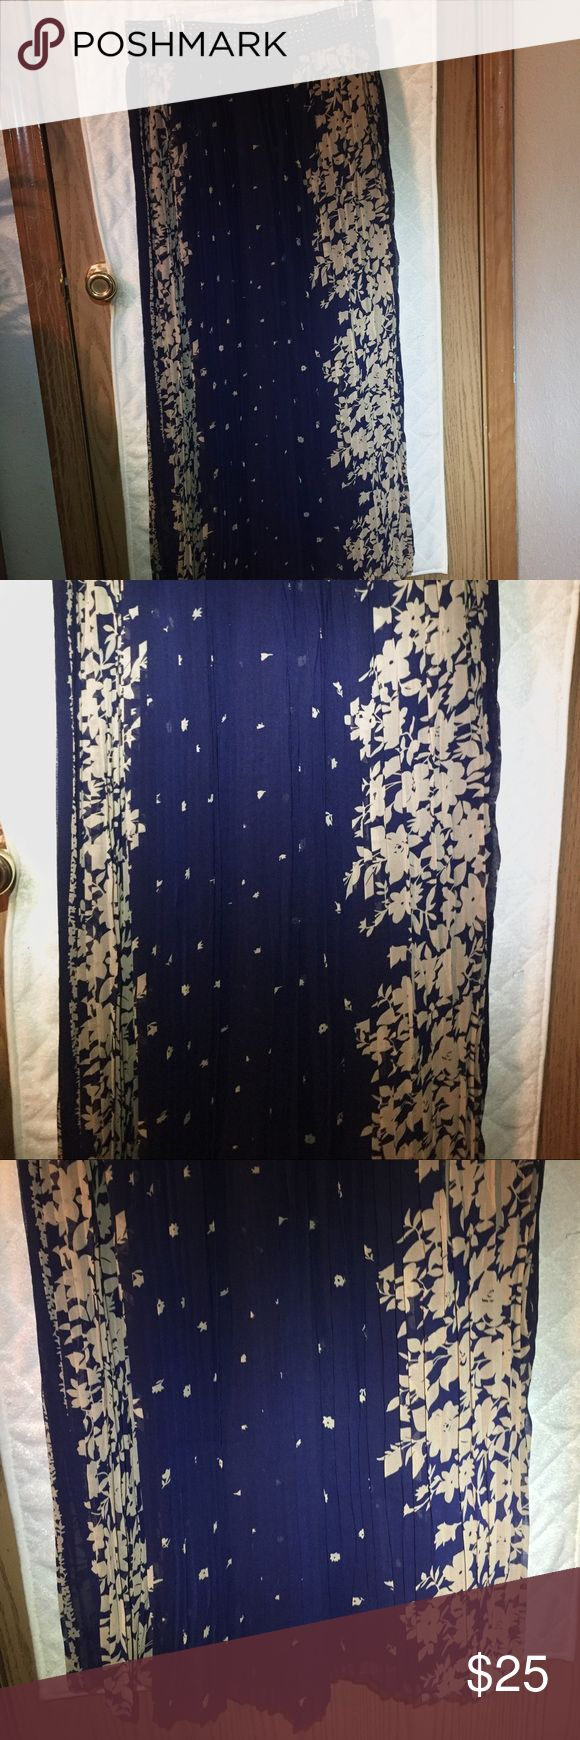 Navy blue and tan pleated floral long skirt Navy blue and tan pleated long skirt. Attached navy belt with shimmering silver dots. NWOT. Size 1X Skirts